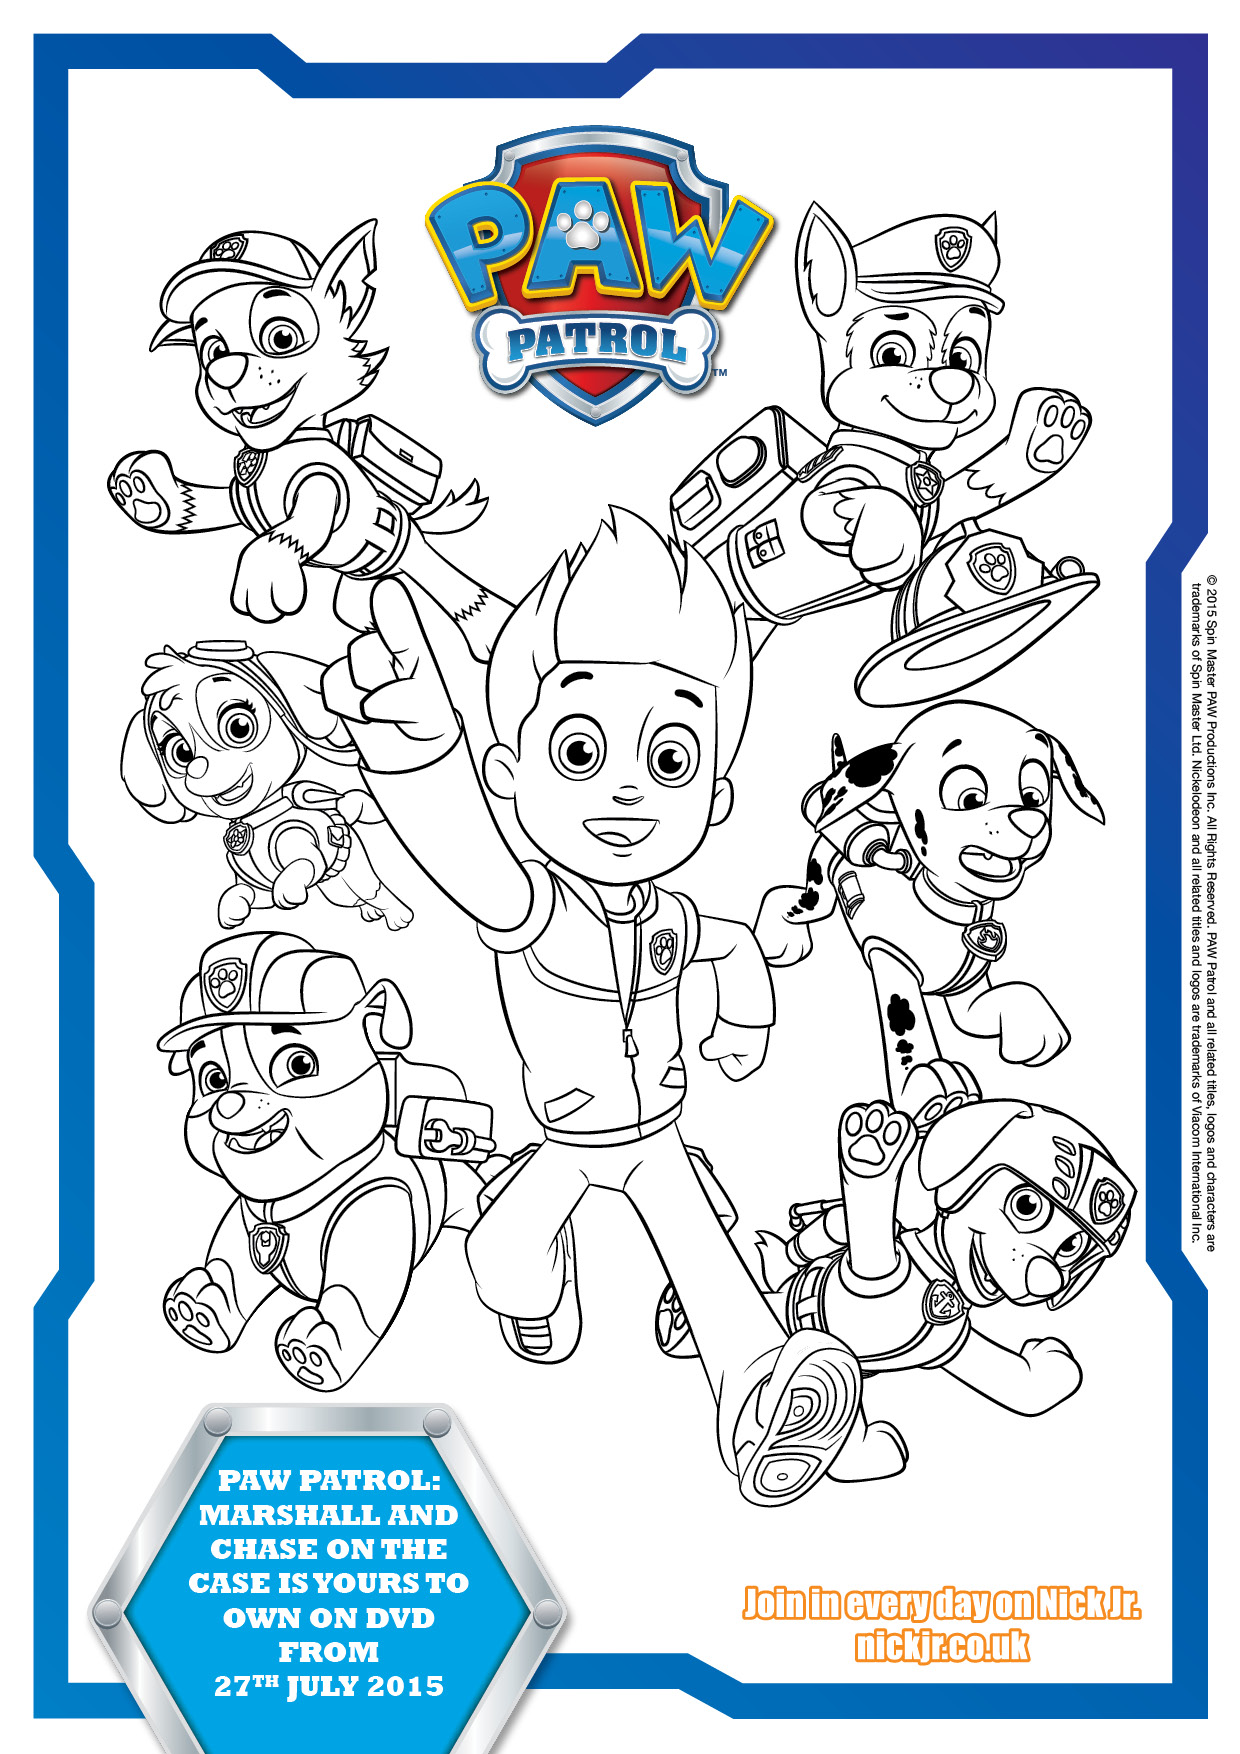 Printable Coloring Pages Of Paw Patrol : Paw patrol colouring pages and activity sheets in the